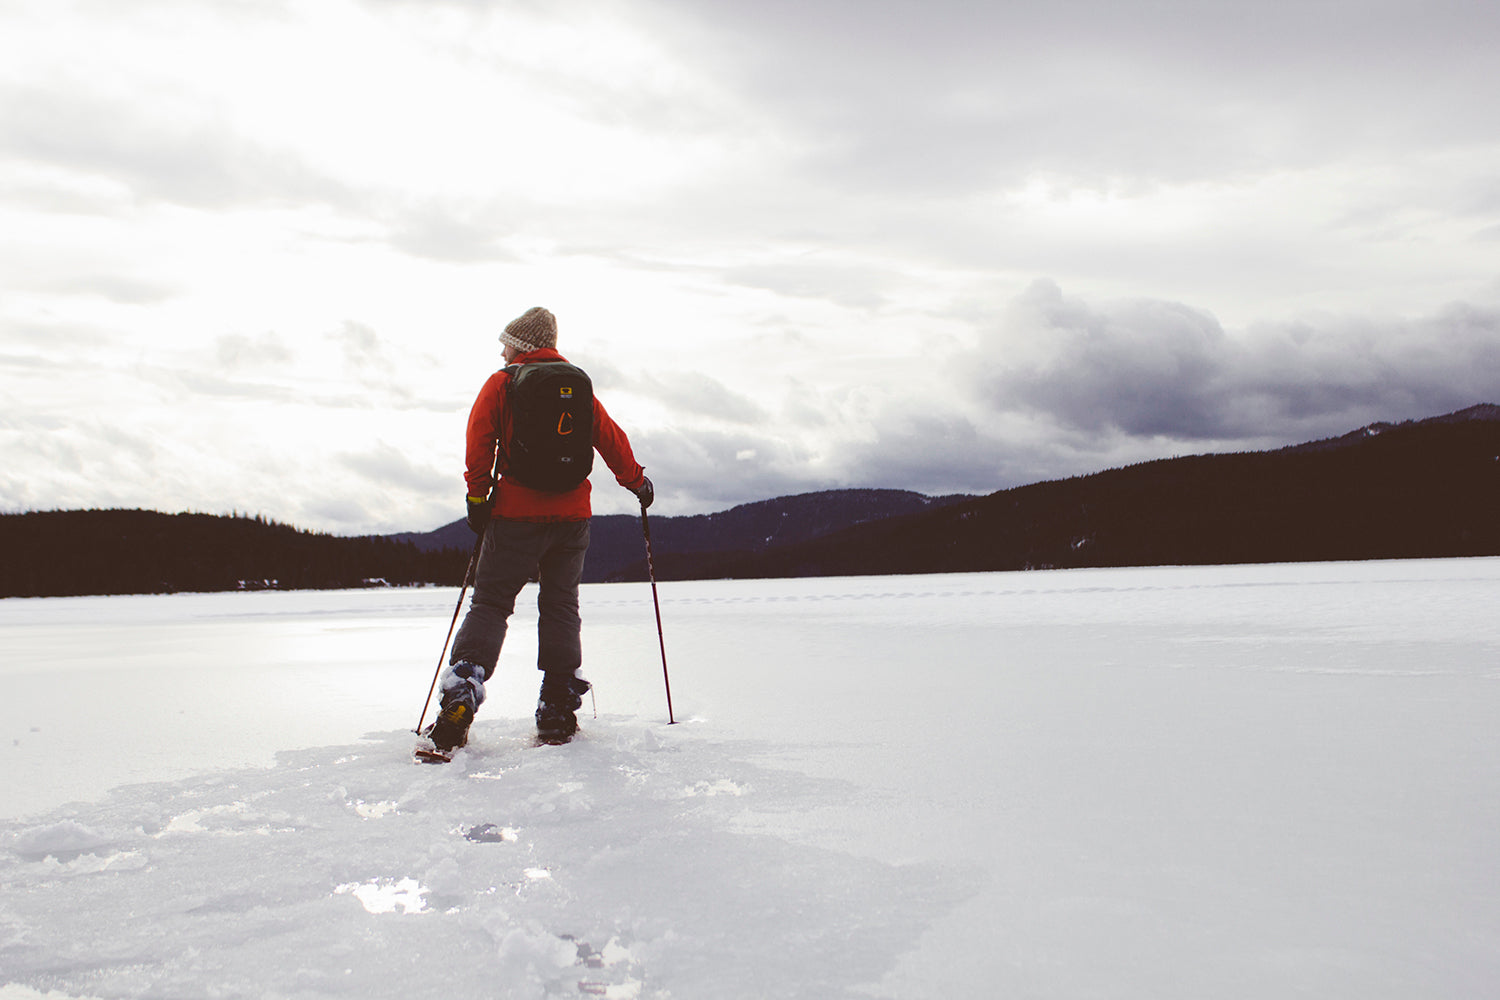 Use snowshoes for deep snow when backpacking or camping